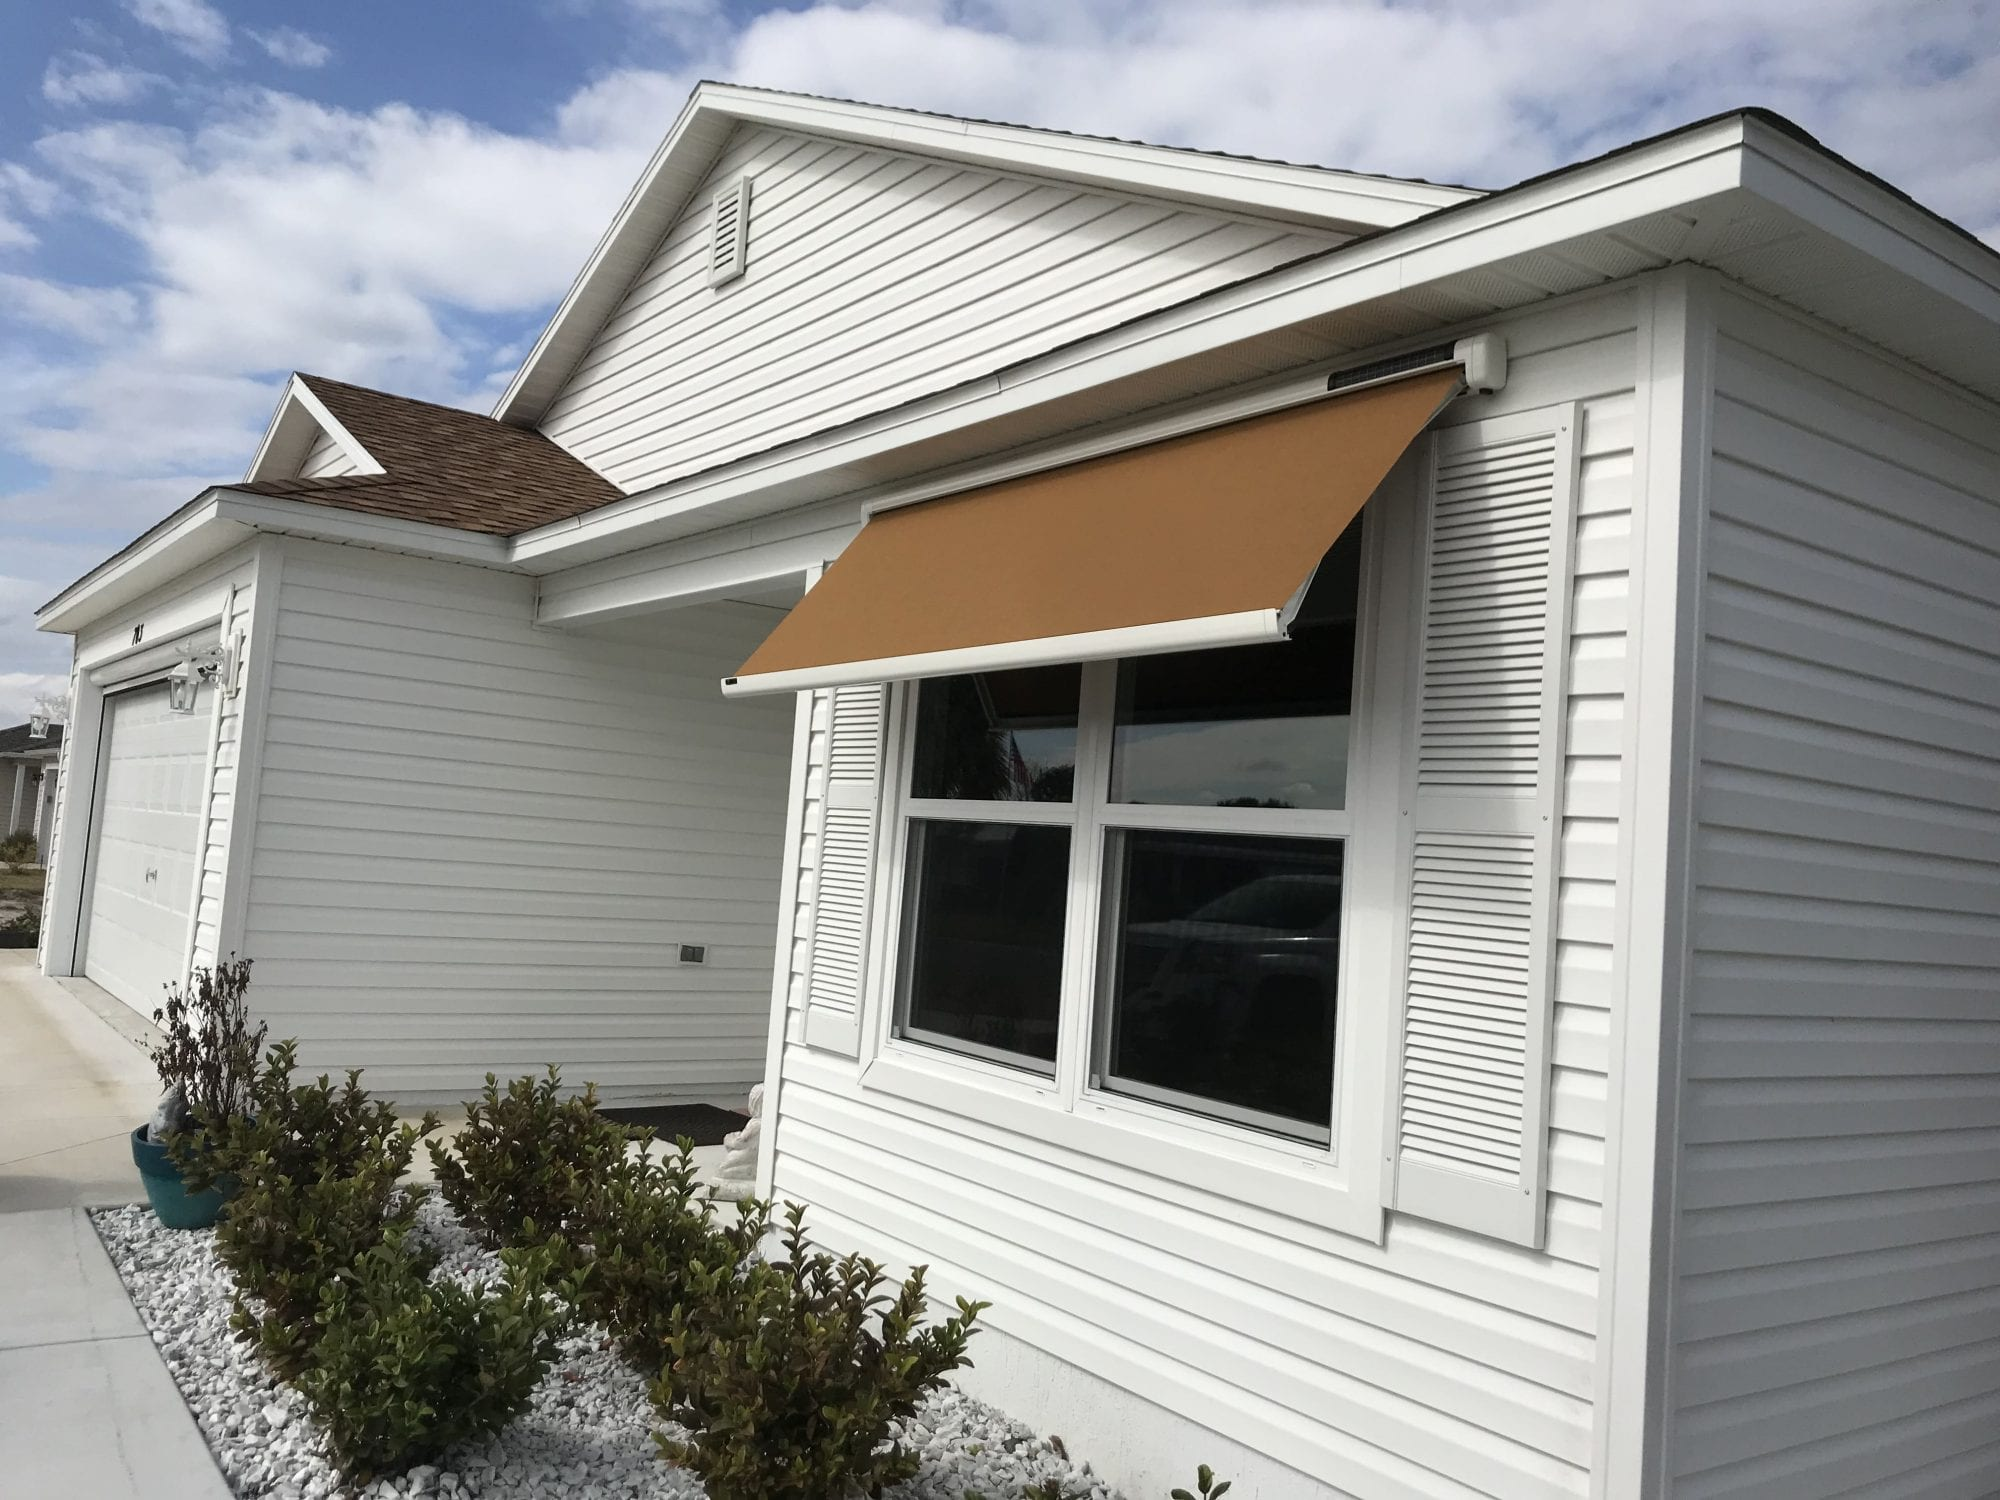 Exterior view of the Sol-Lux Eos Smart Home Window Awning